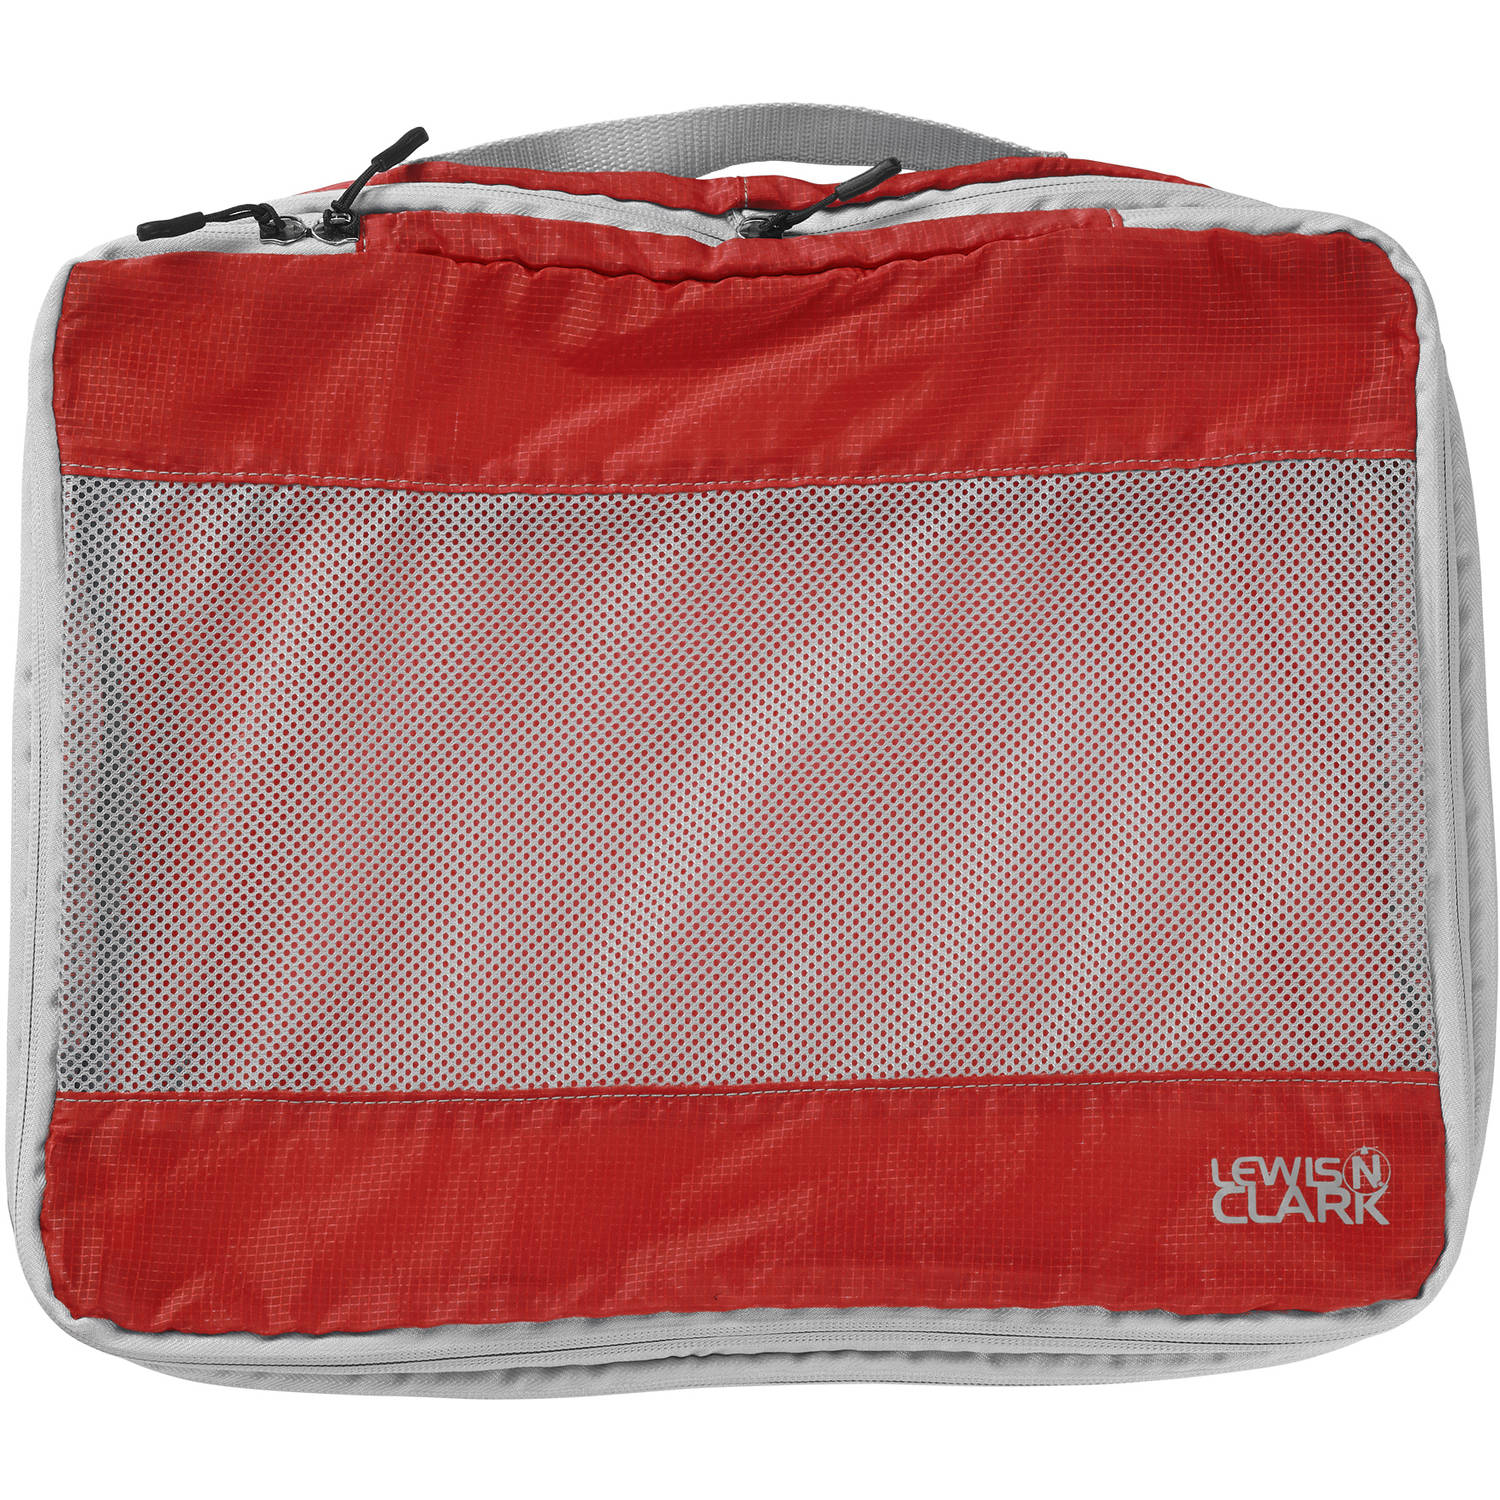 ElectroLight Packing Cube, Large, Red